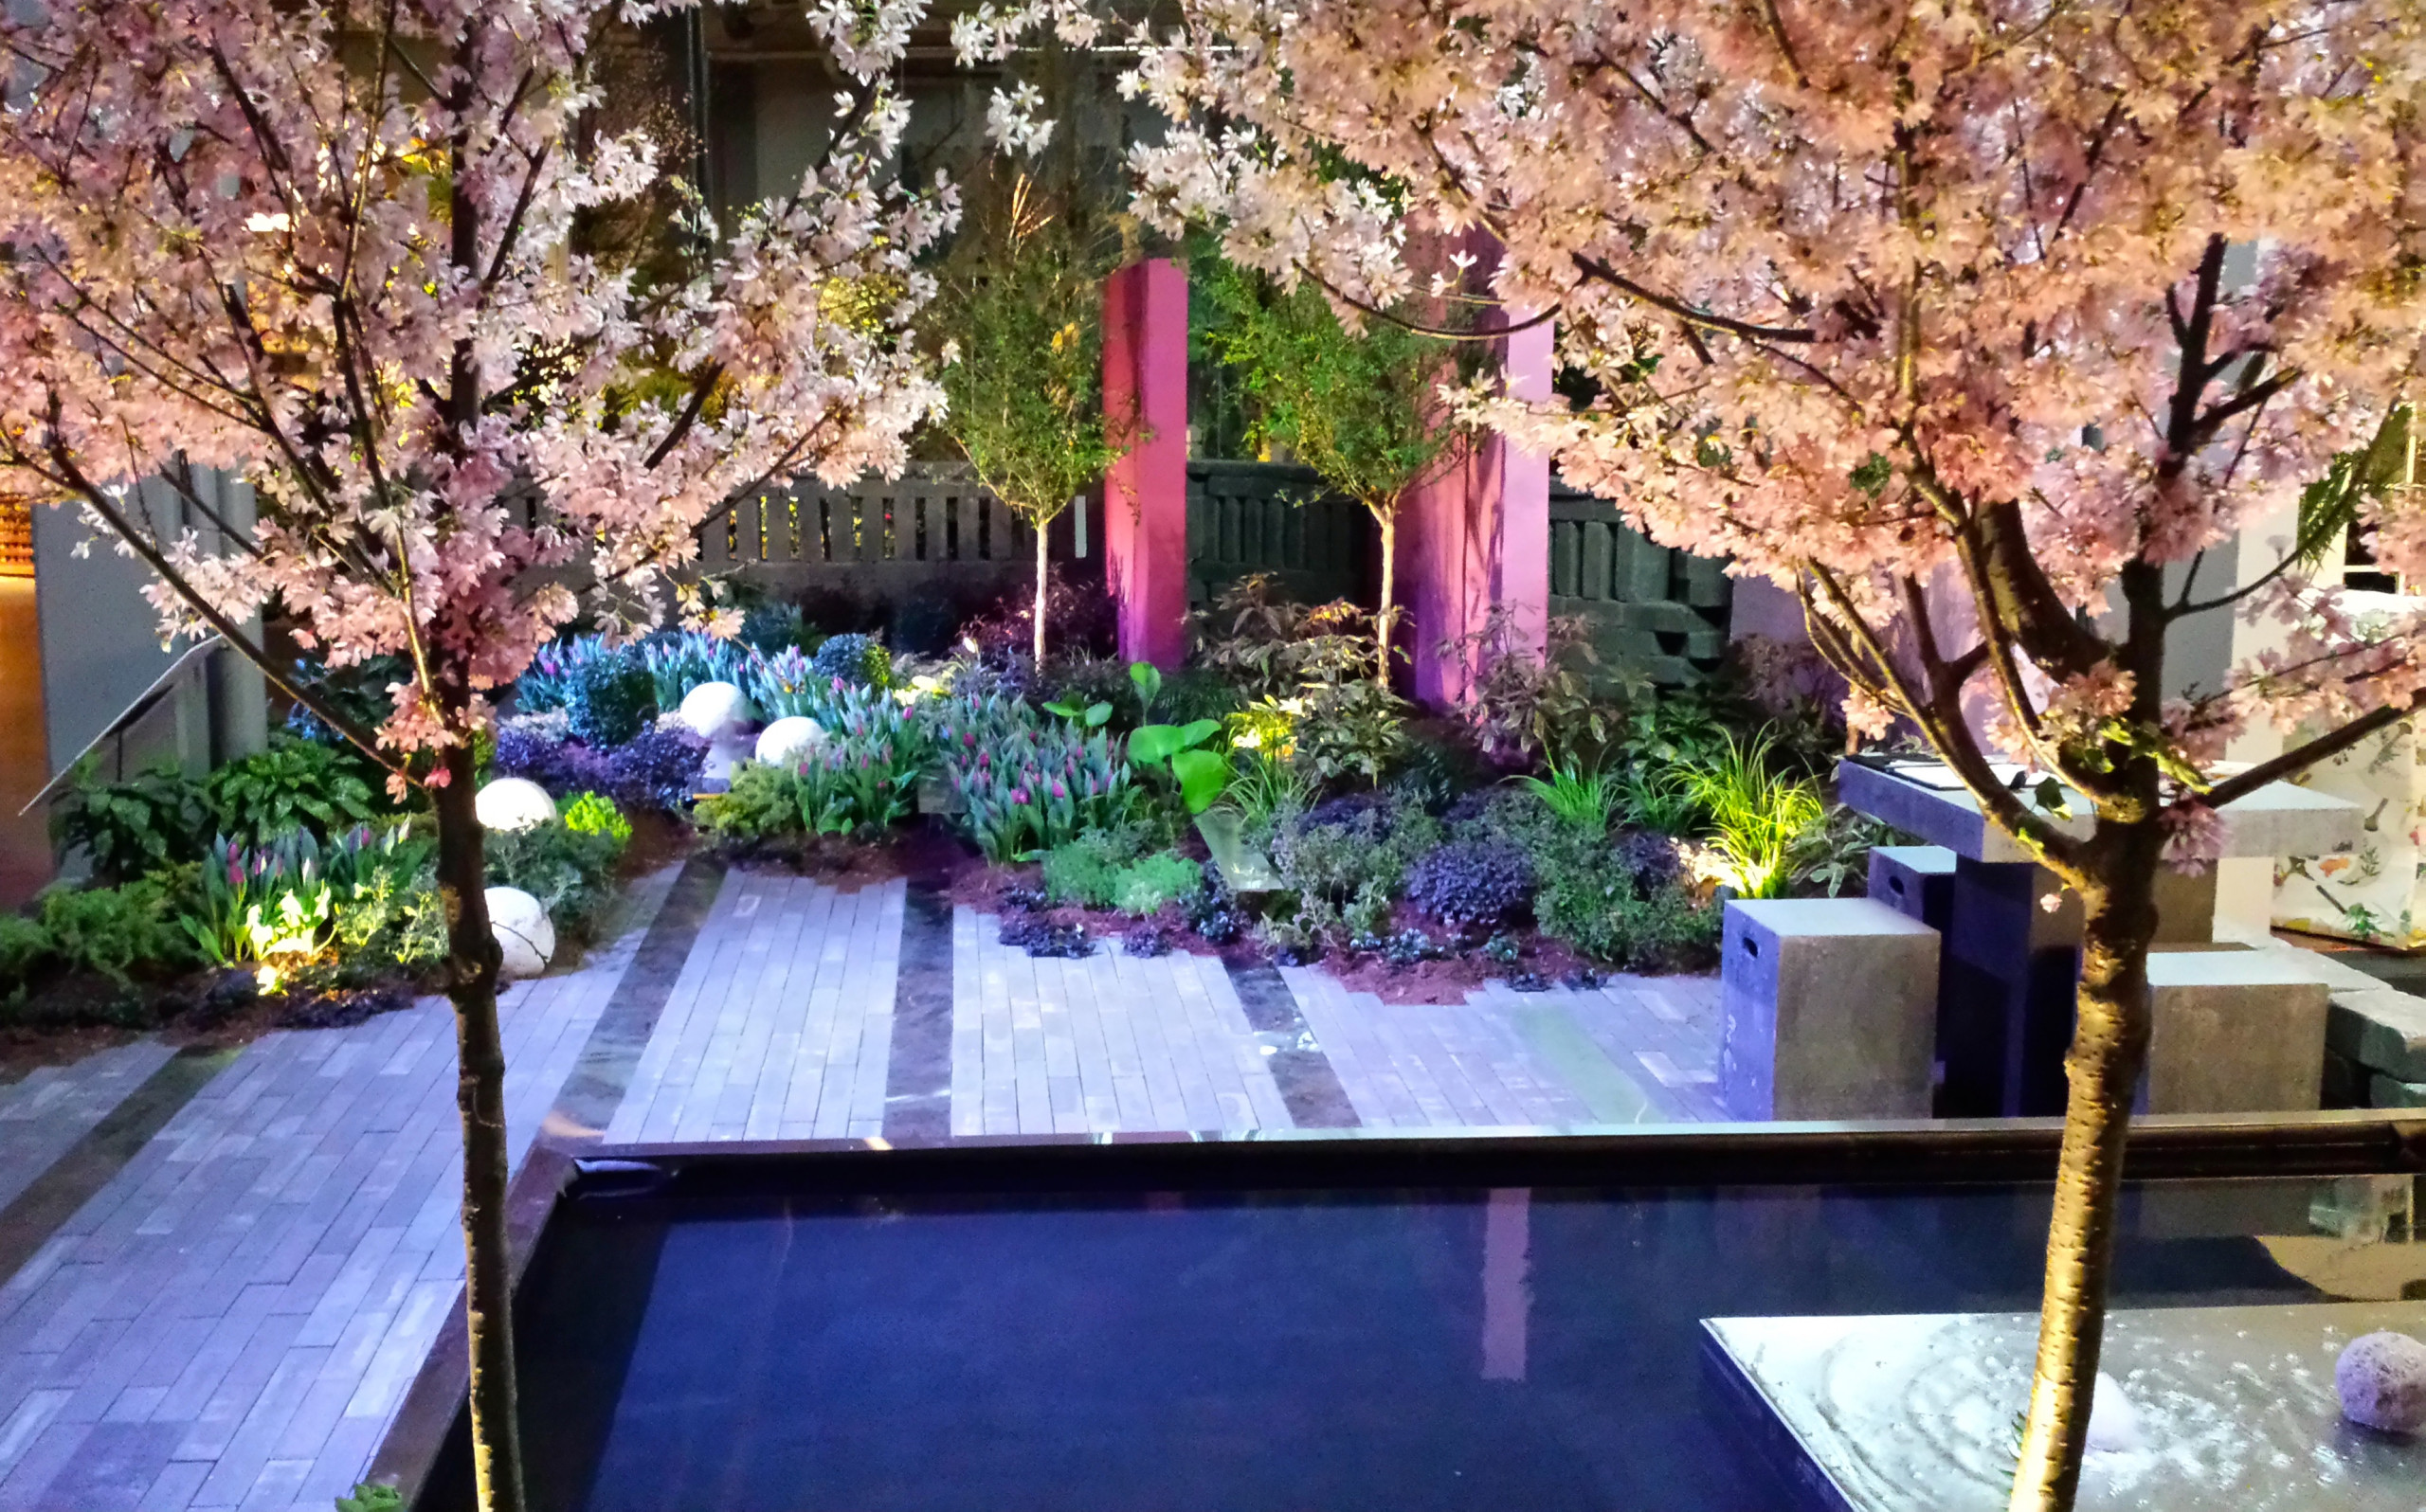 Southern Spring Home and Garden Show Entry 2015